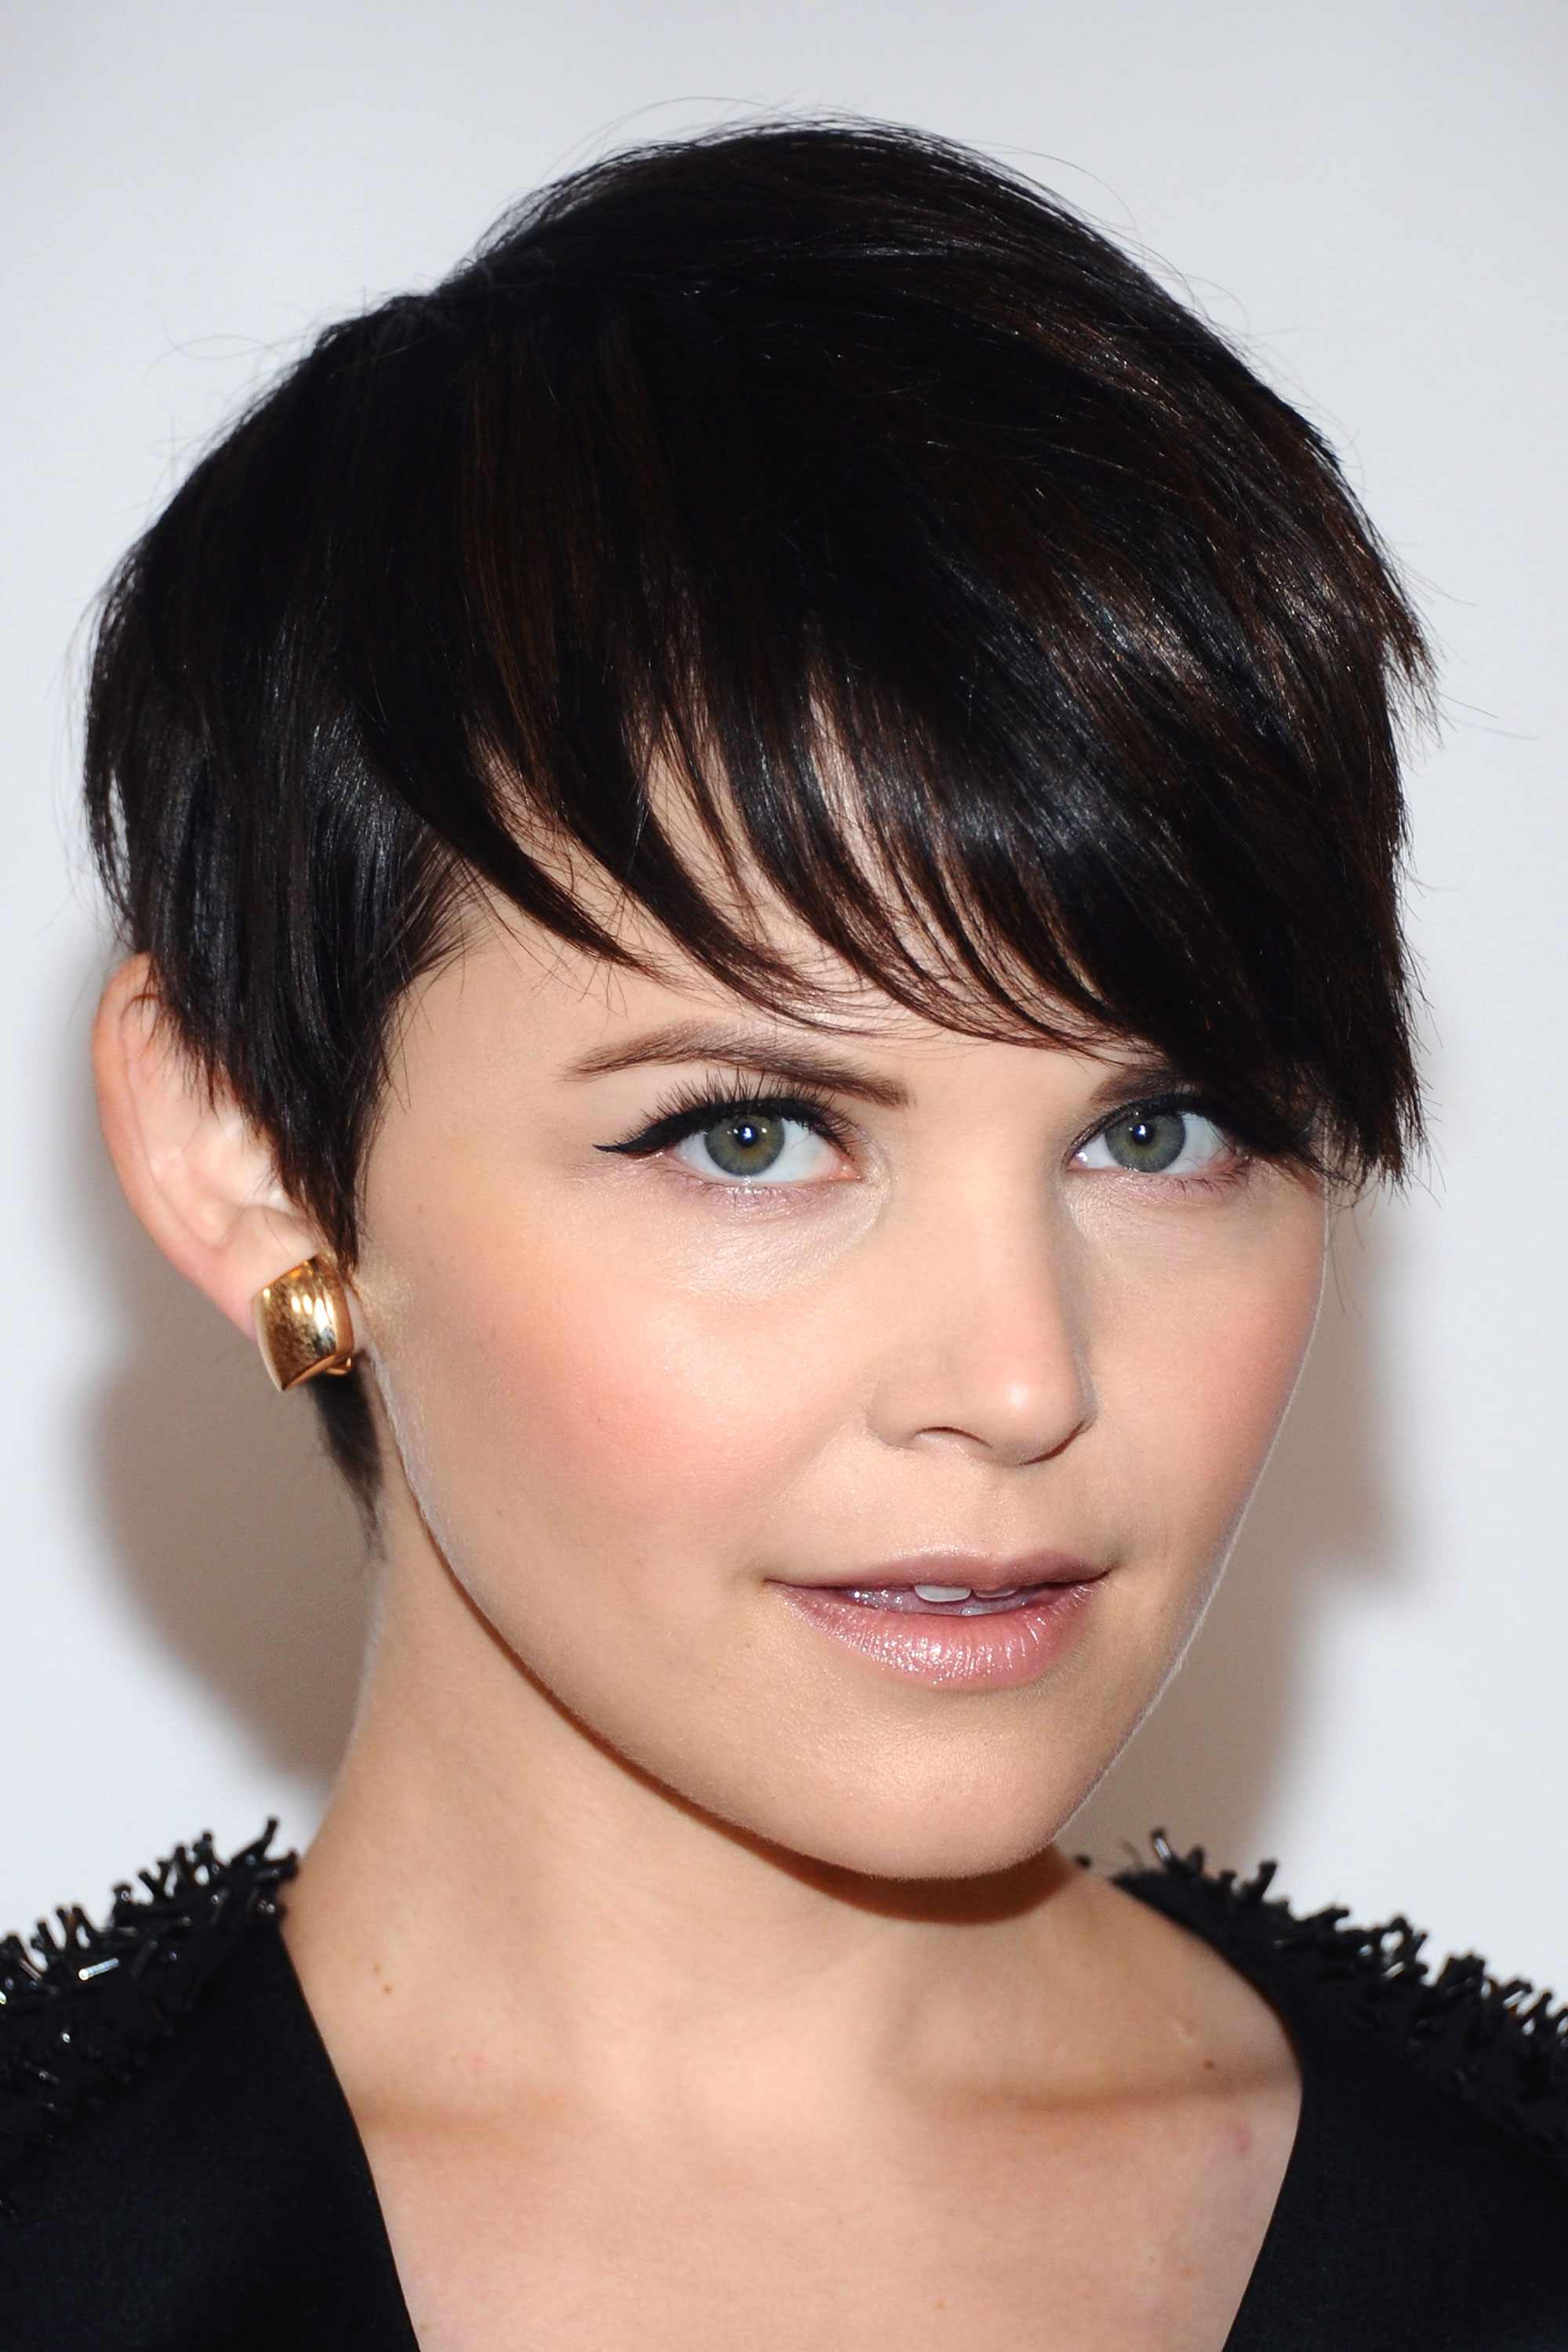 Groovy 42 Pixie Cuts We Love For 2017 Short Pixie Hairstyles From Short Hairstyles Gunalazisus